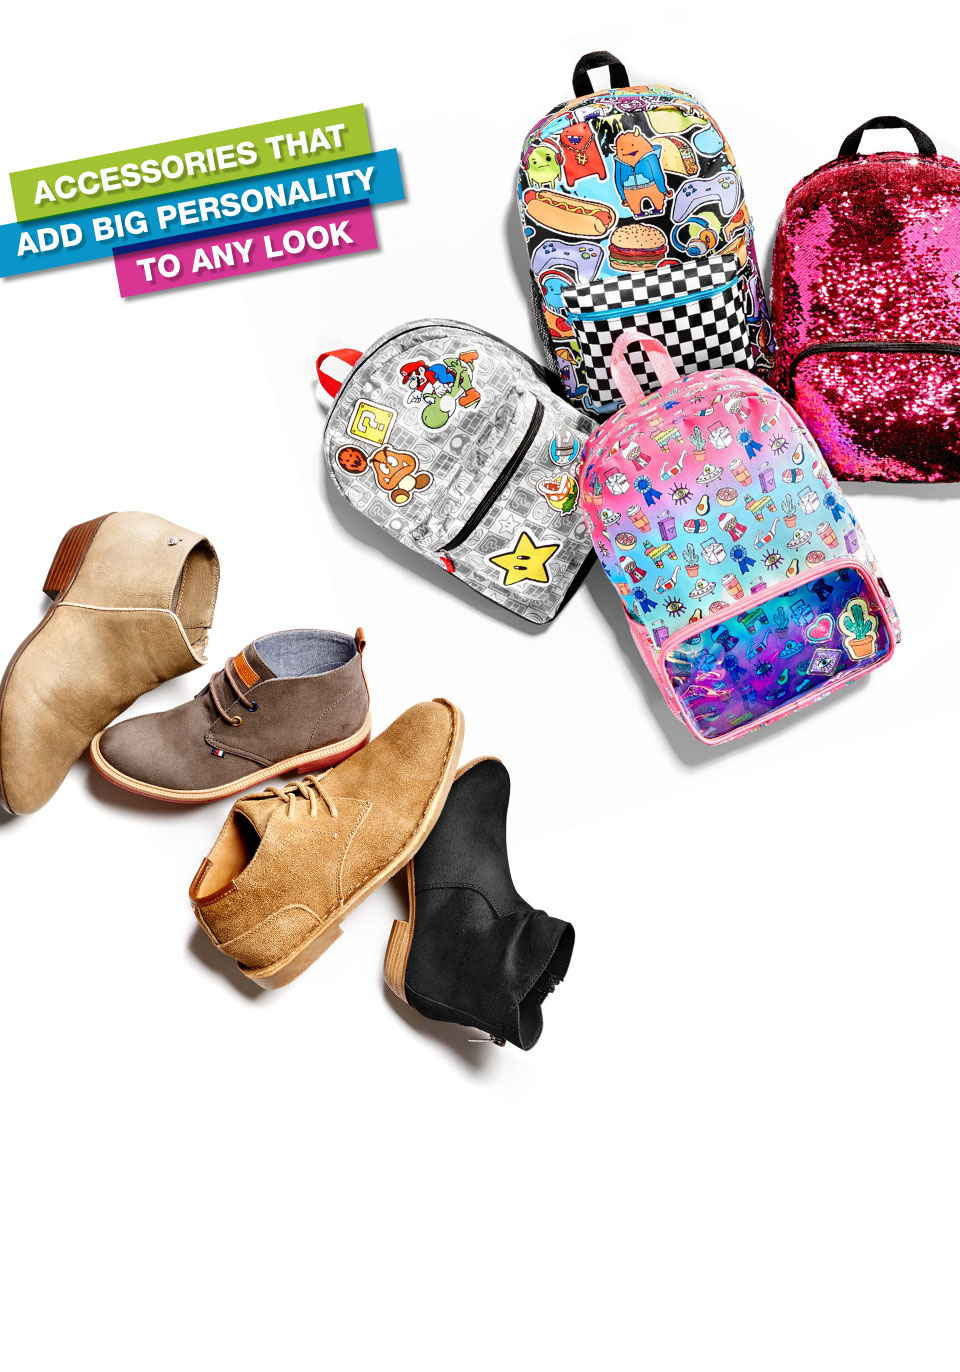 accessories that add big personality to any look